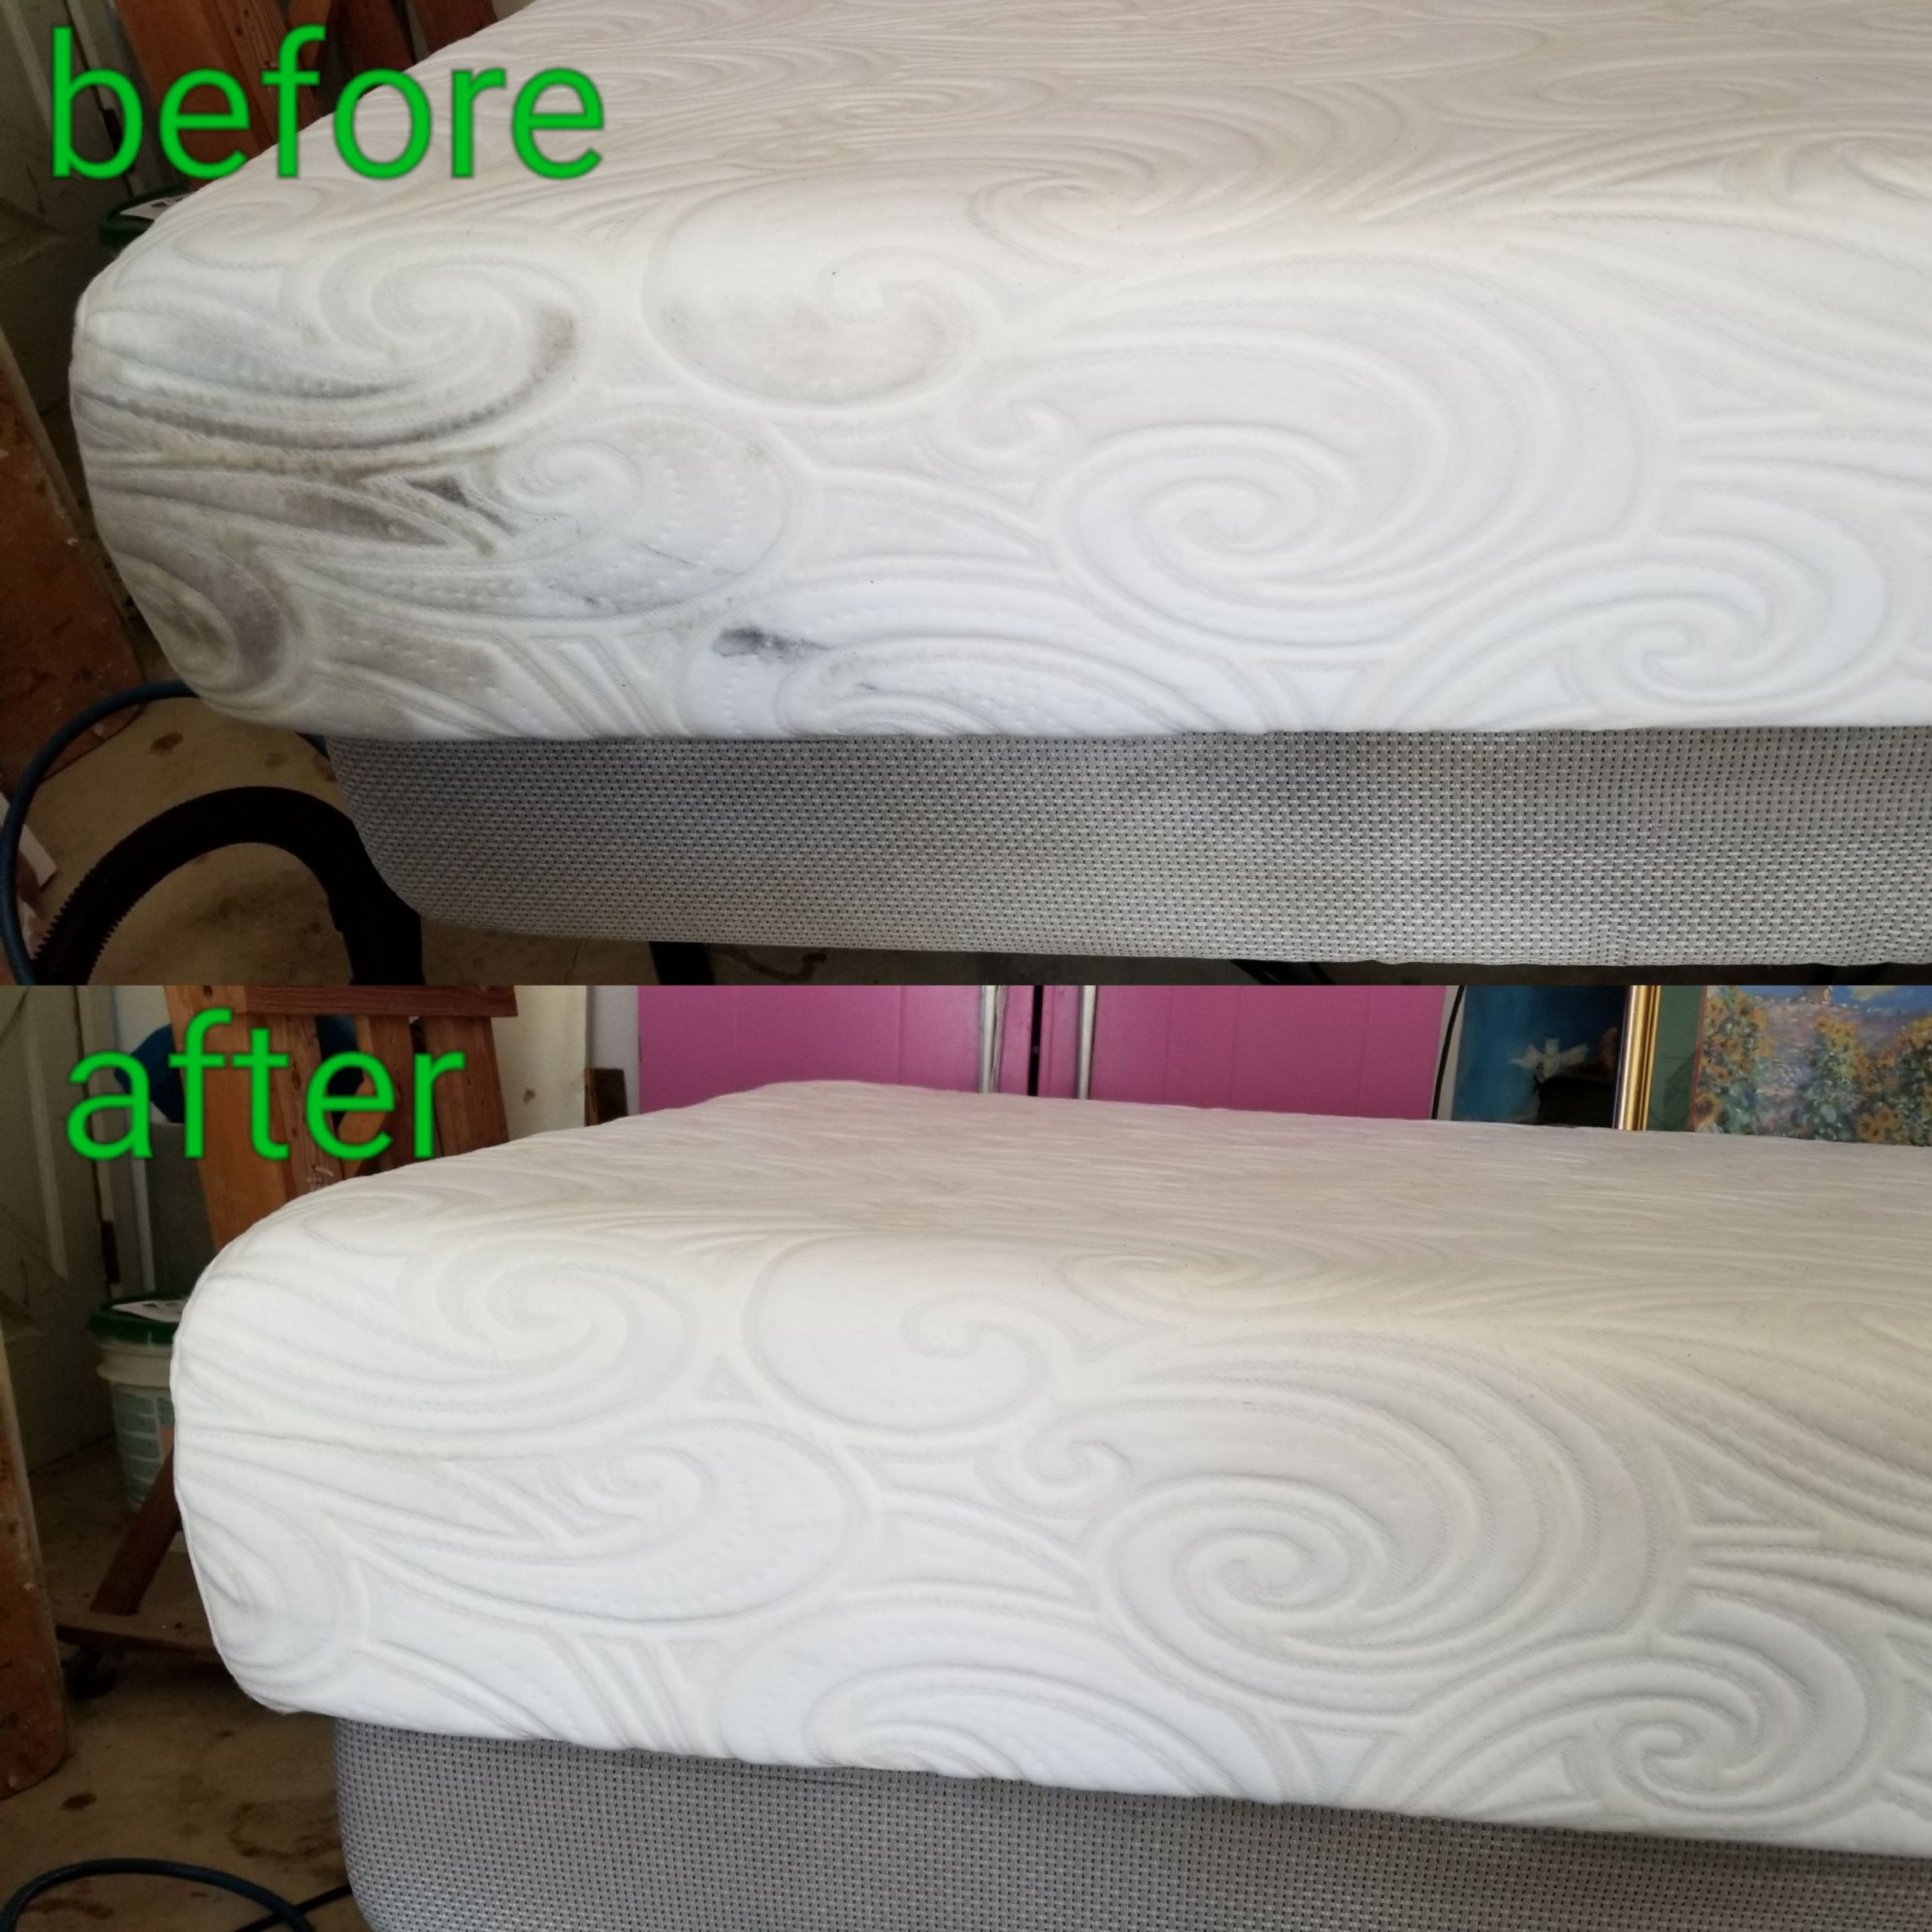 Mattress Cleaning in Santa Rosa Beach, Miramar Beach, Seaside